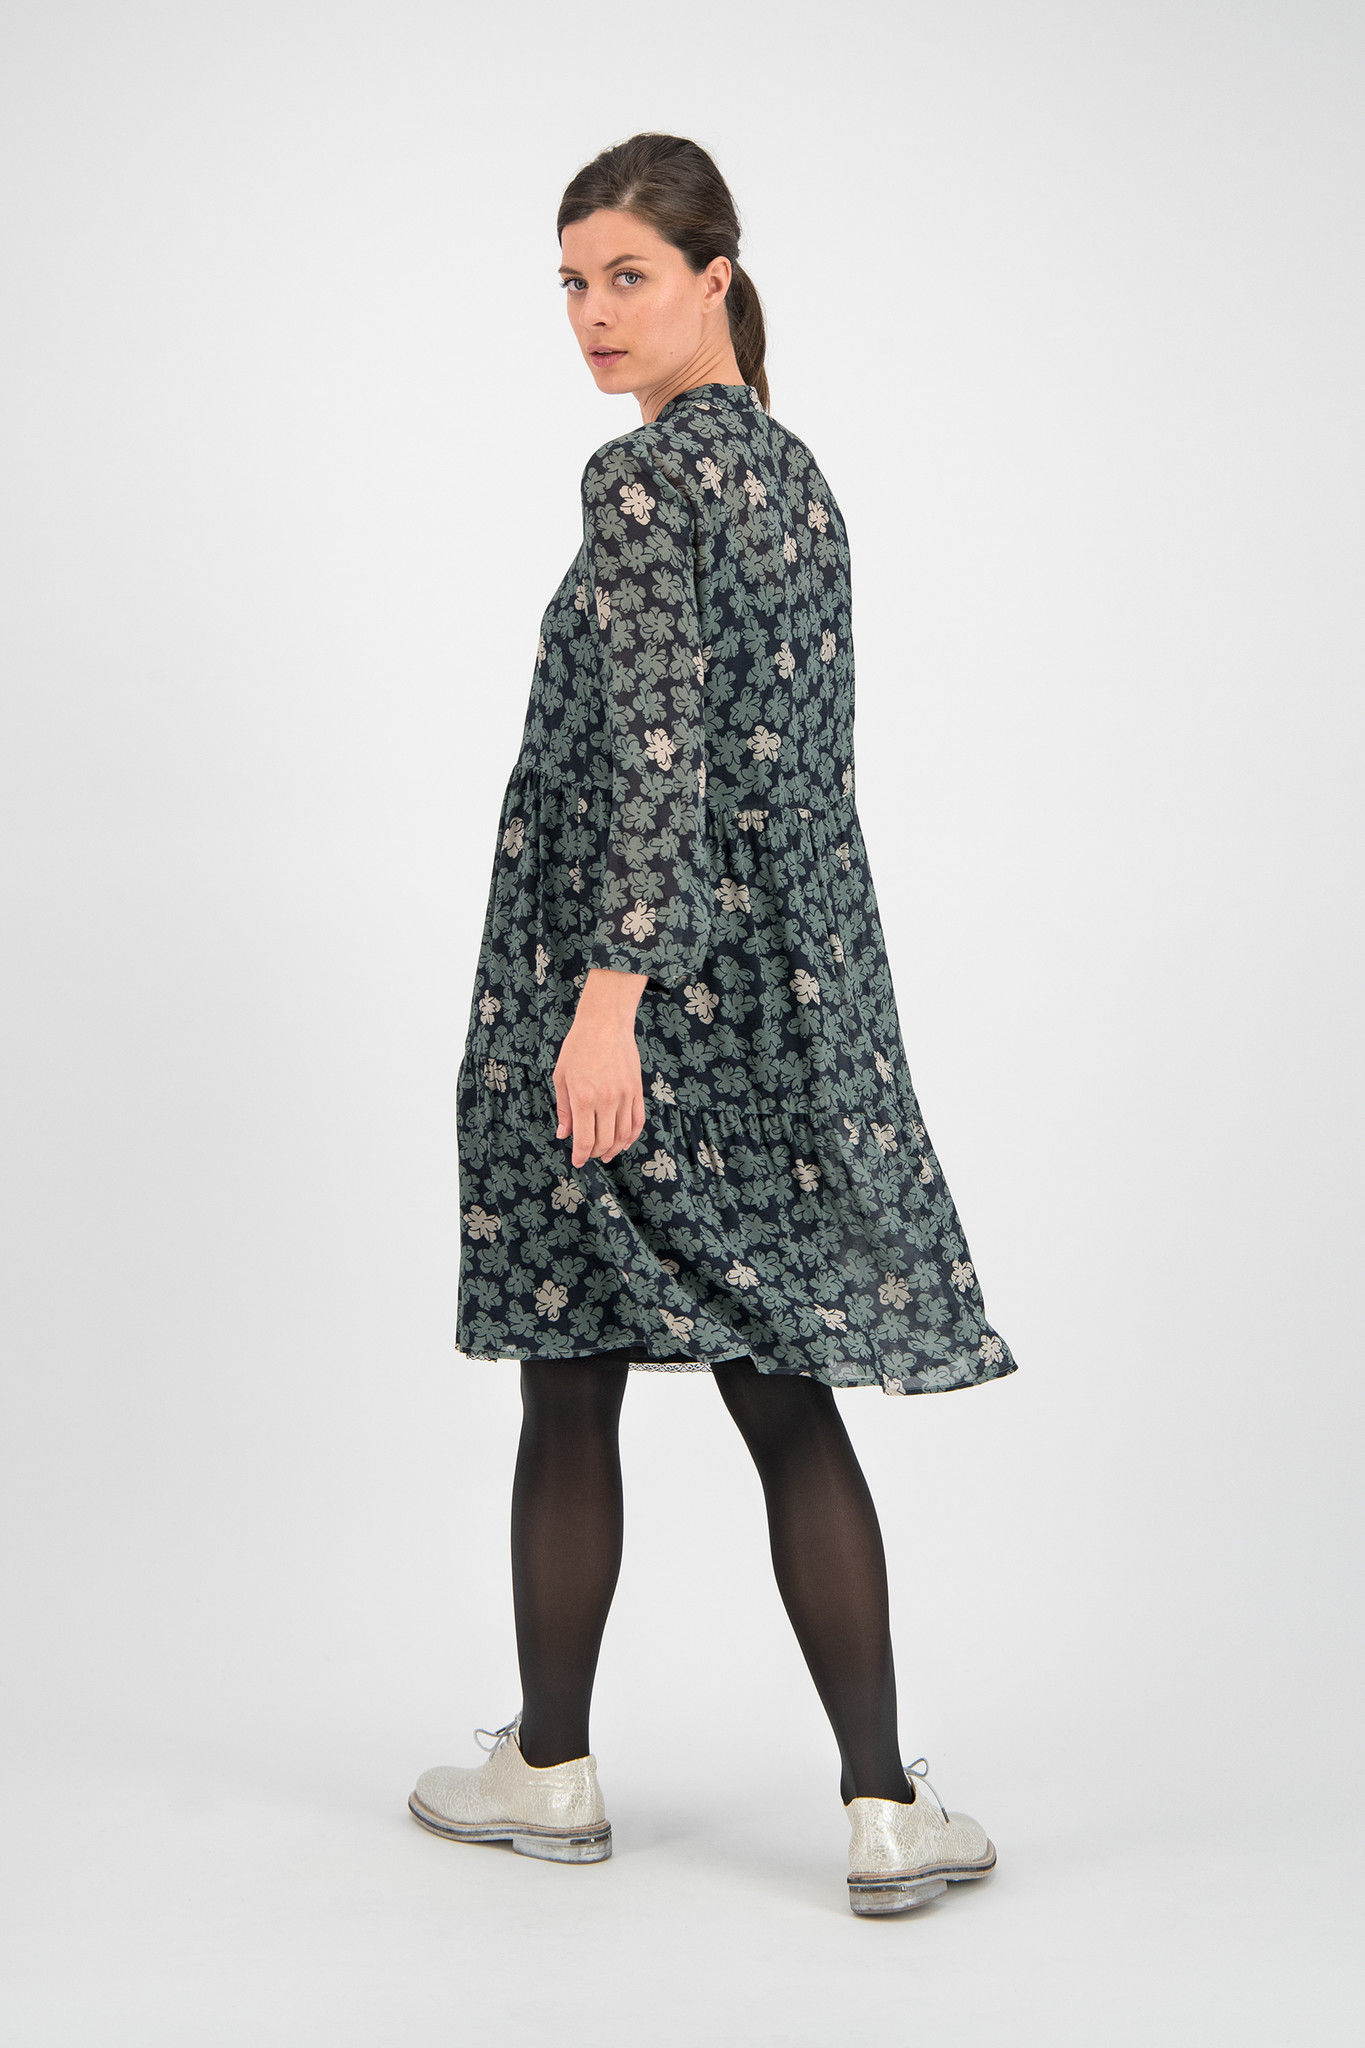 SYLVER Sketch Flowers Blouse - Tundra